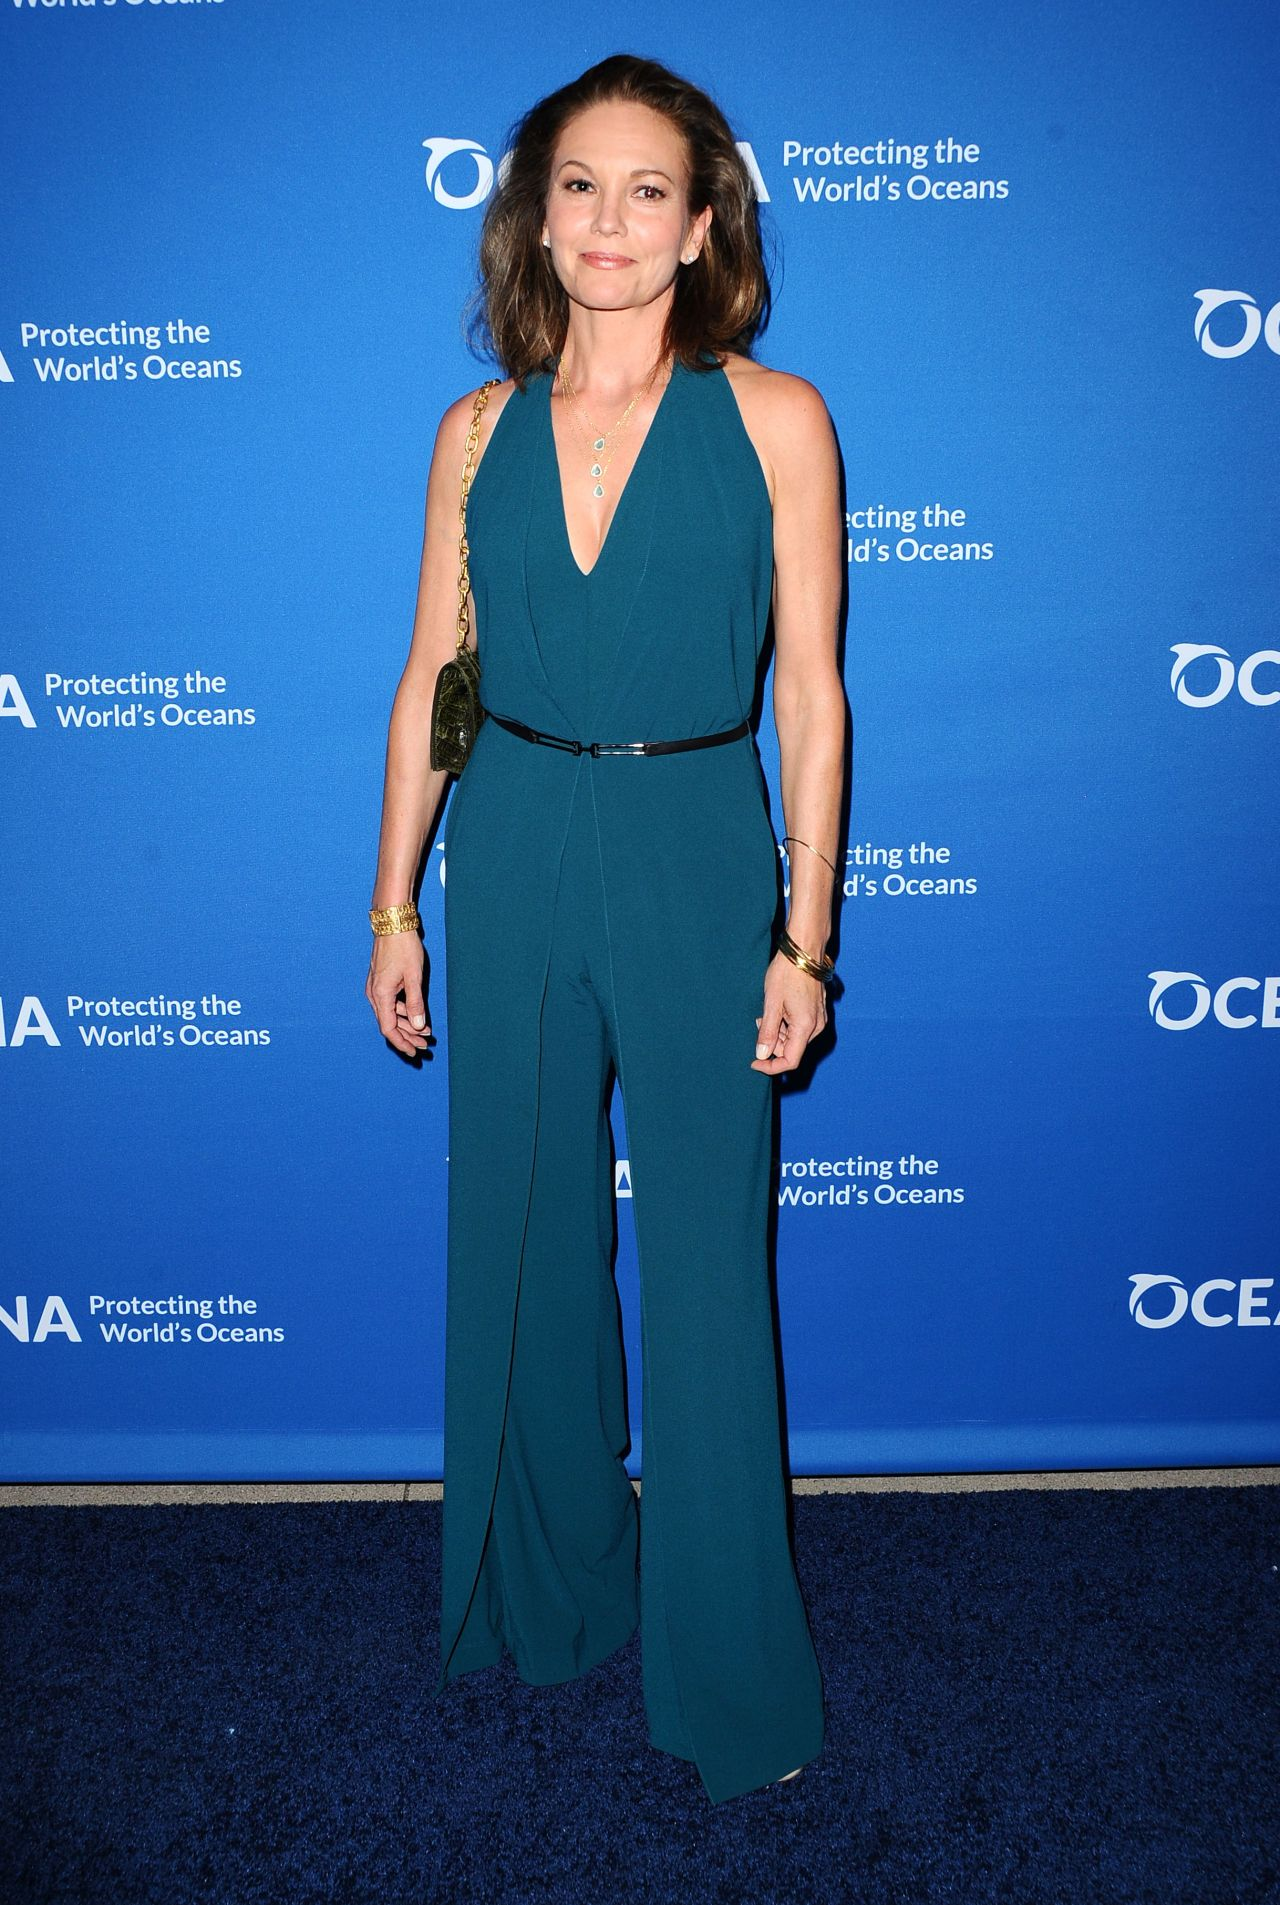 diane-lane-oceana-concert-for-our-oceans-in-beverly-hills-september-2015_2